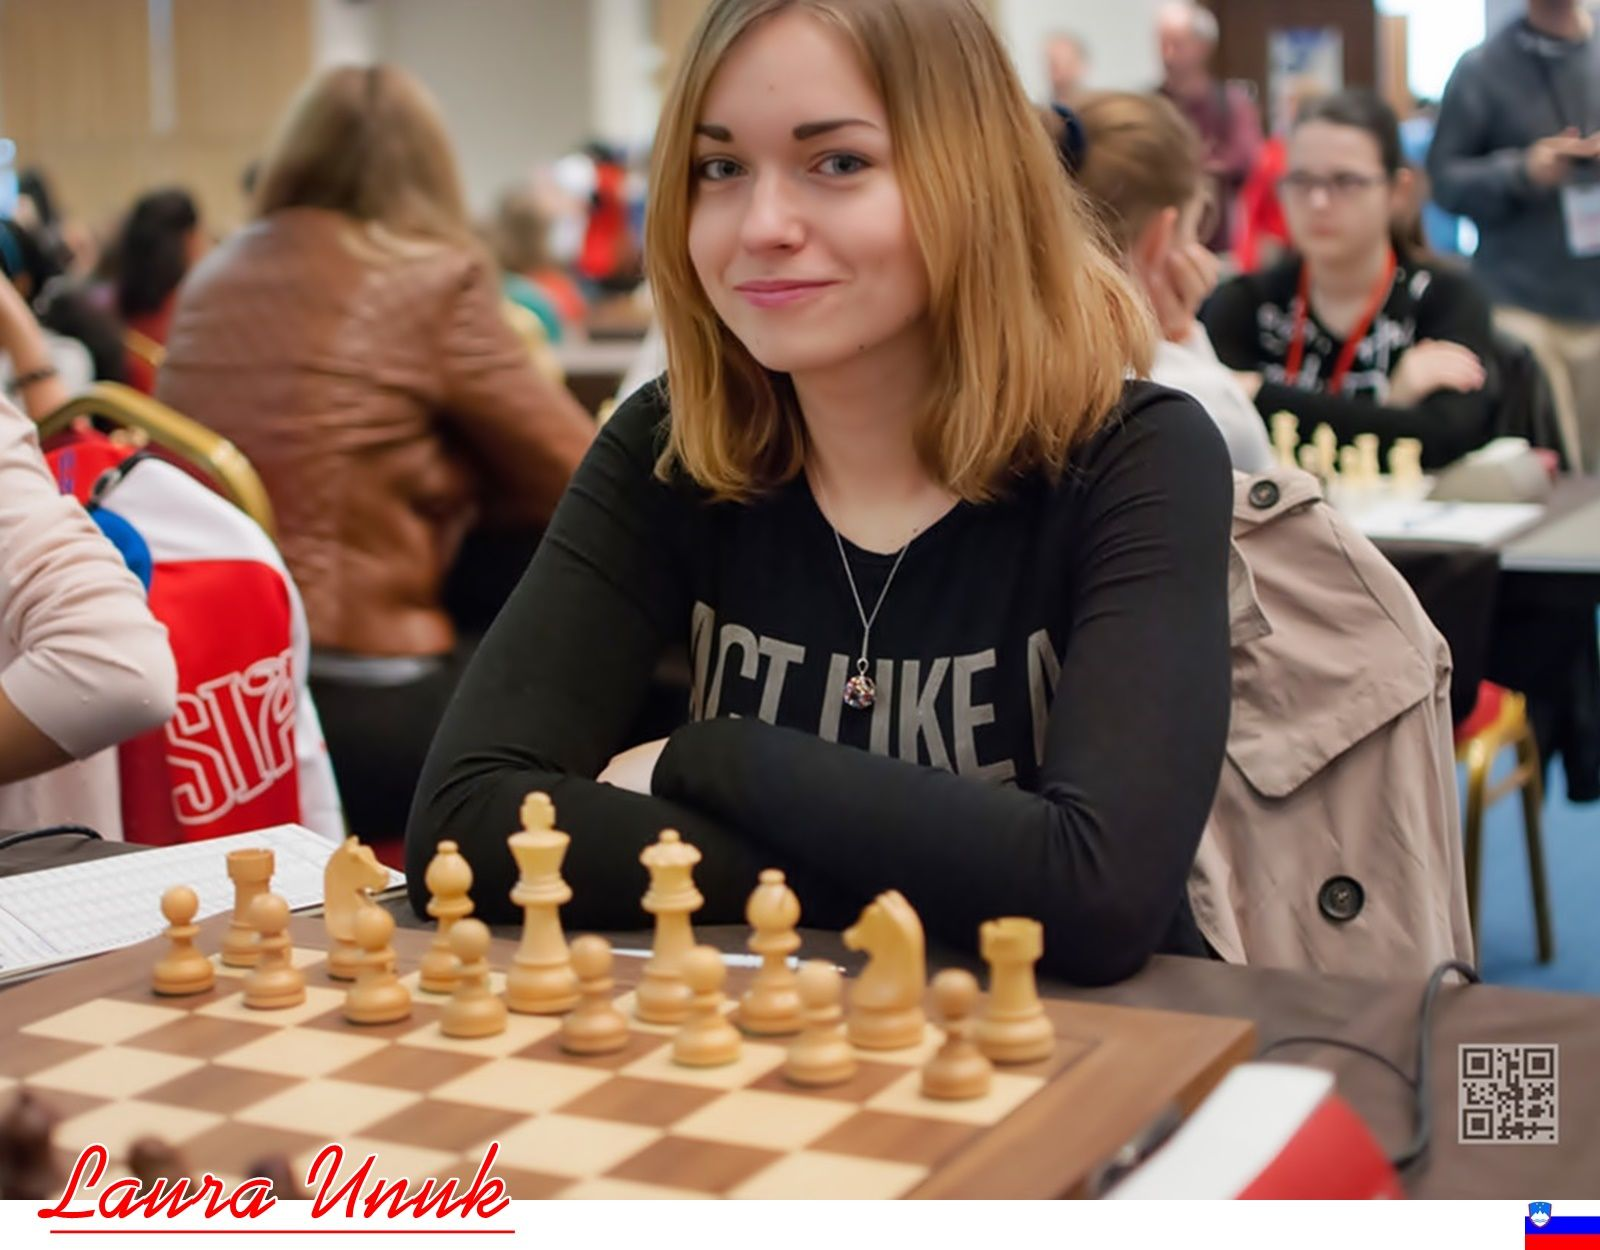 Laura Unuk Federation Slovenia Fide Title Woman Intl Master Rating Std 2220 Rapid 2105 Blitz 2016 Chess Game Chess Chess Board